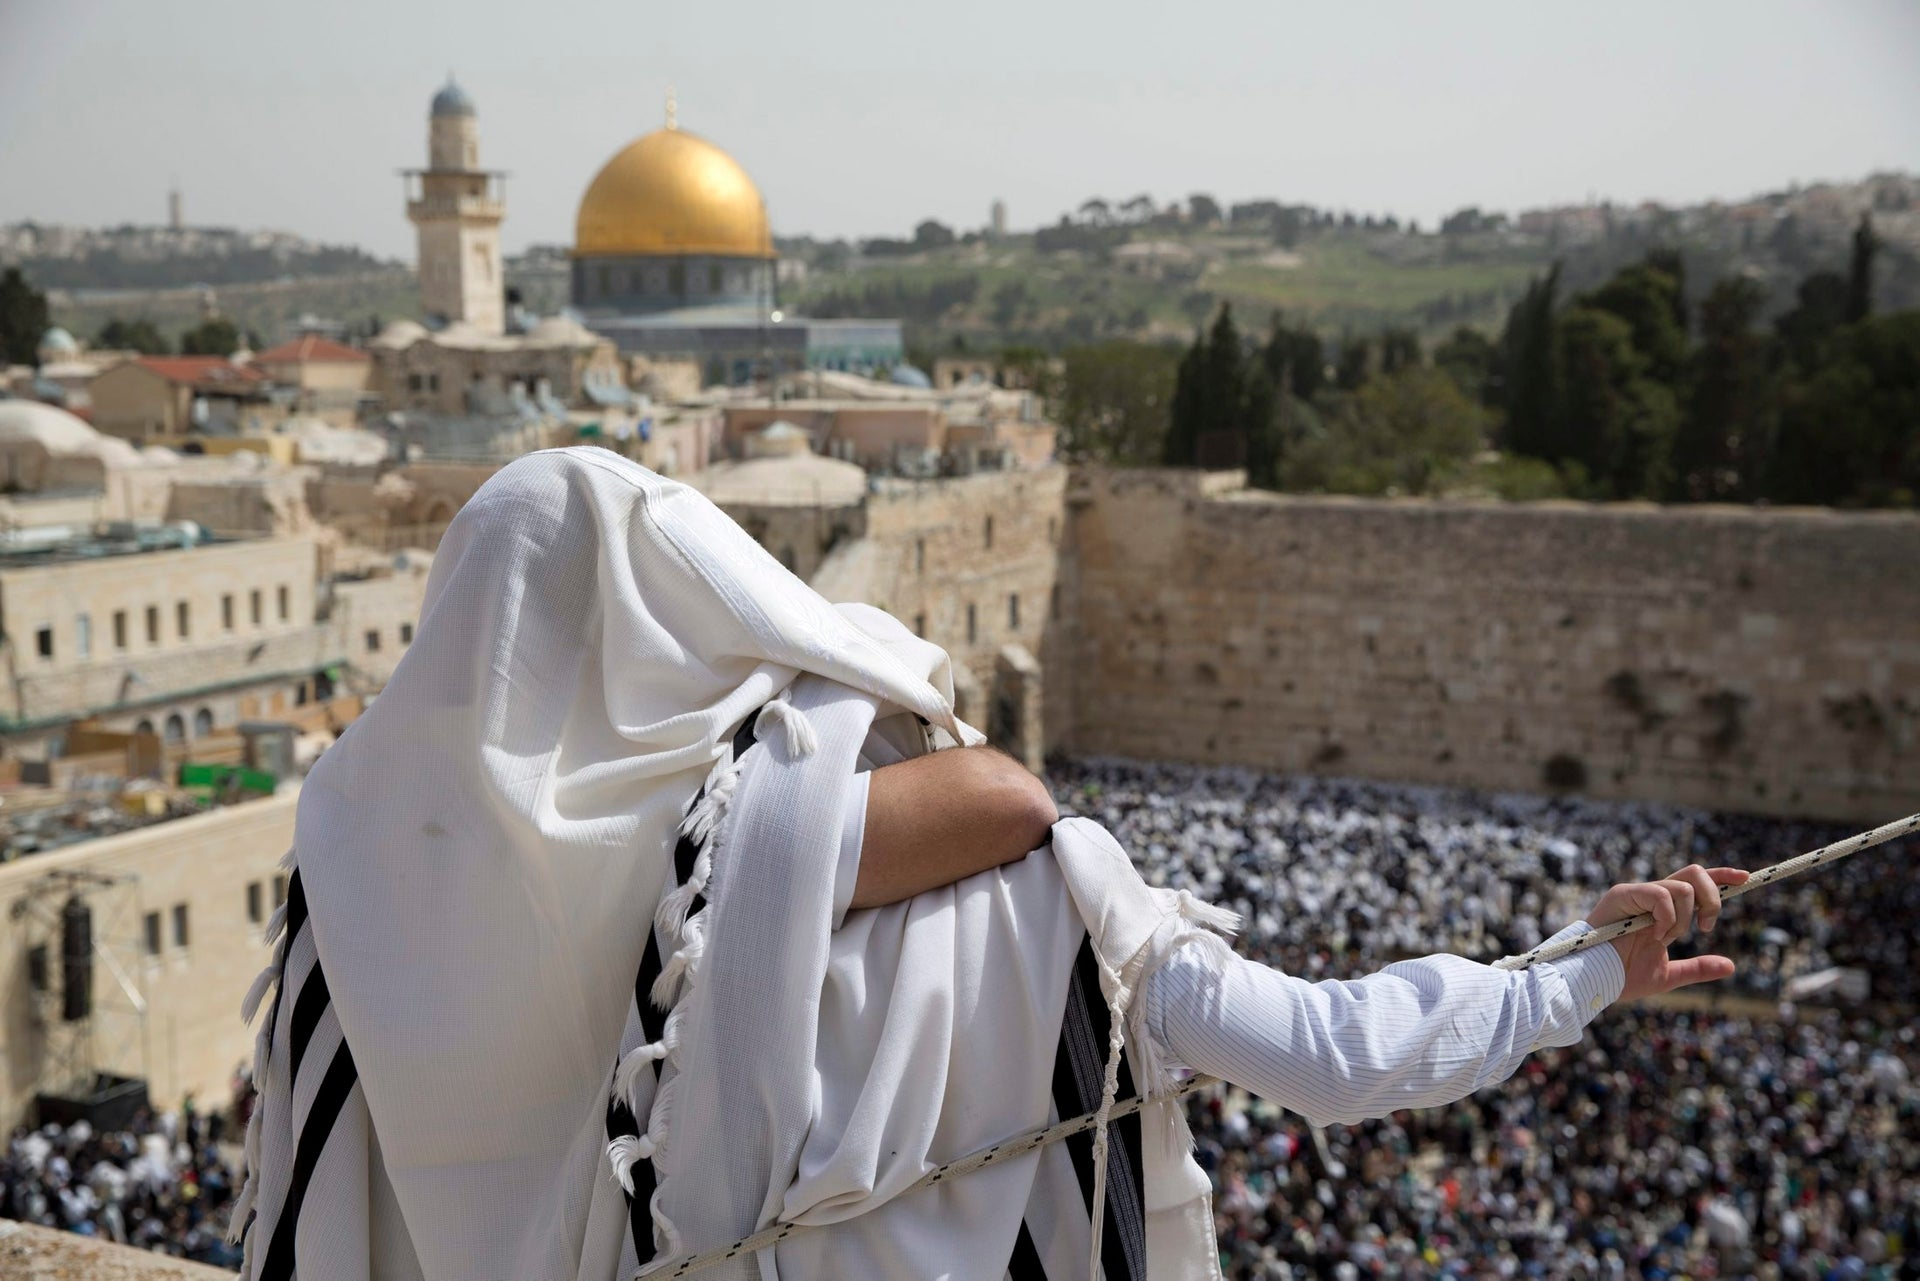 Jewish men of the kohanim priestly caste participate in a blessing during the Passover holiday, in front of the Western Wall  in Jerusalem's Old City, April 13, 2017.